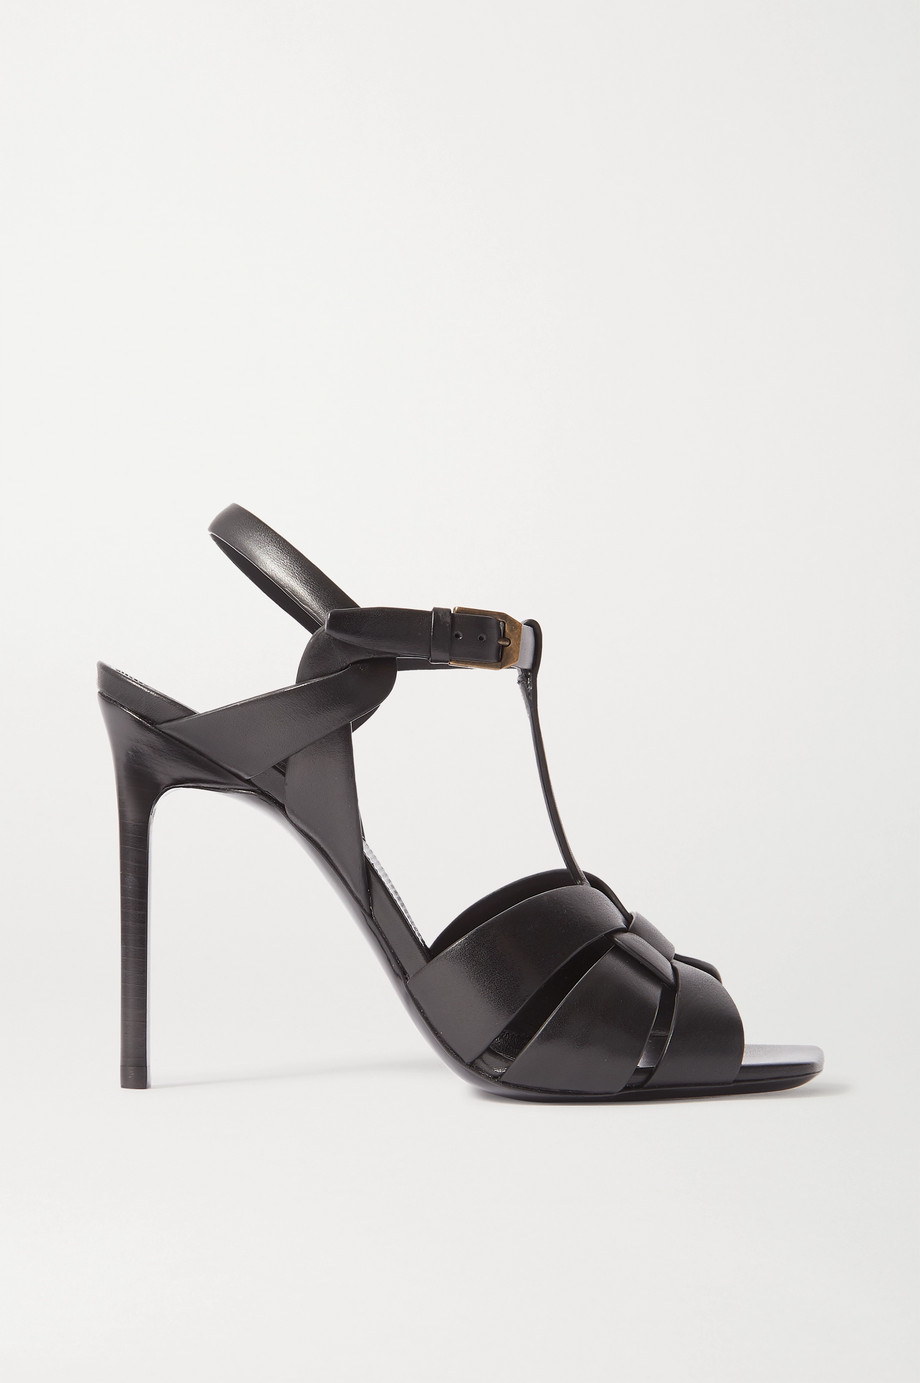 SAINT LAURENT Tribute woven leather sandals